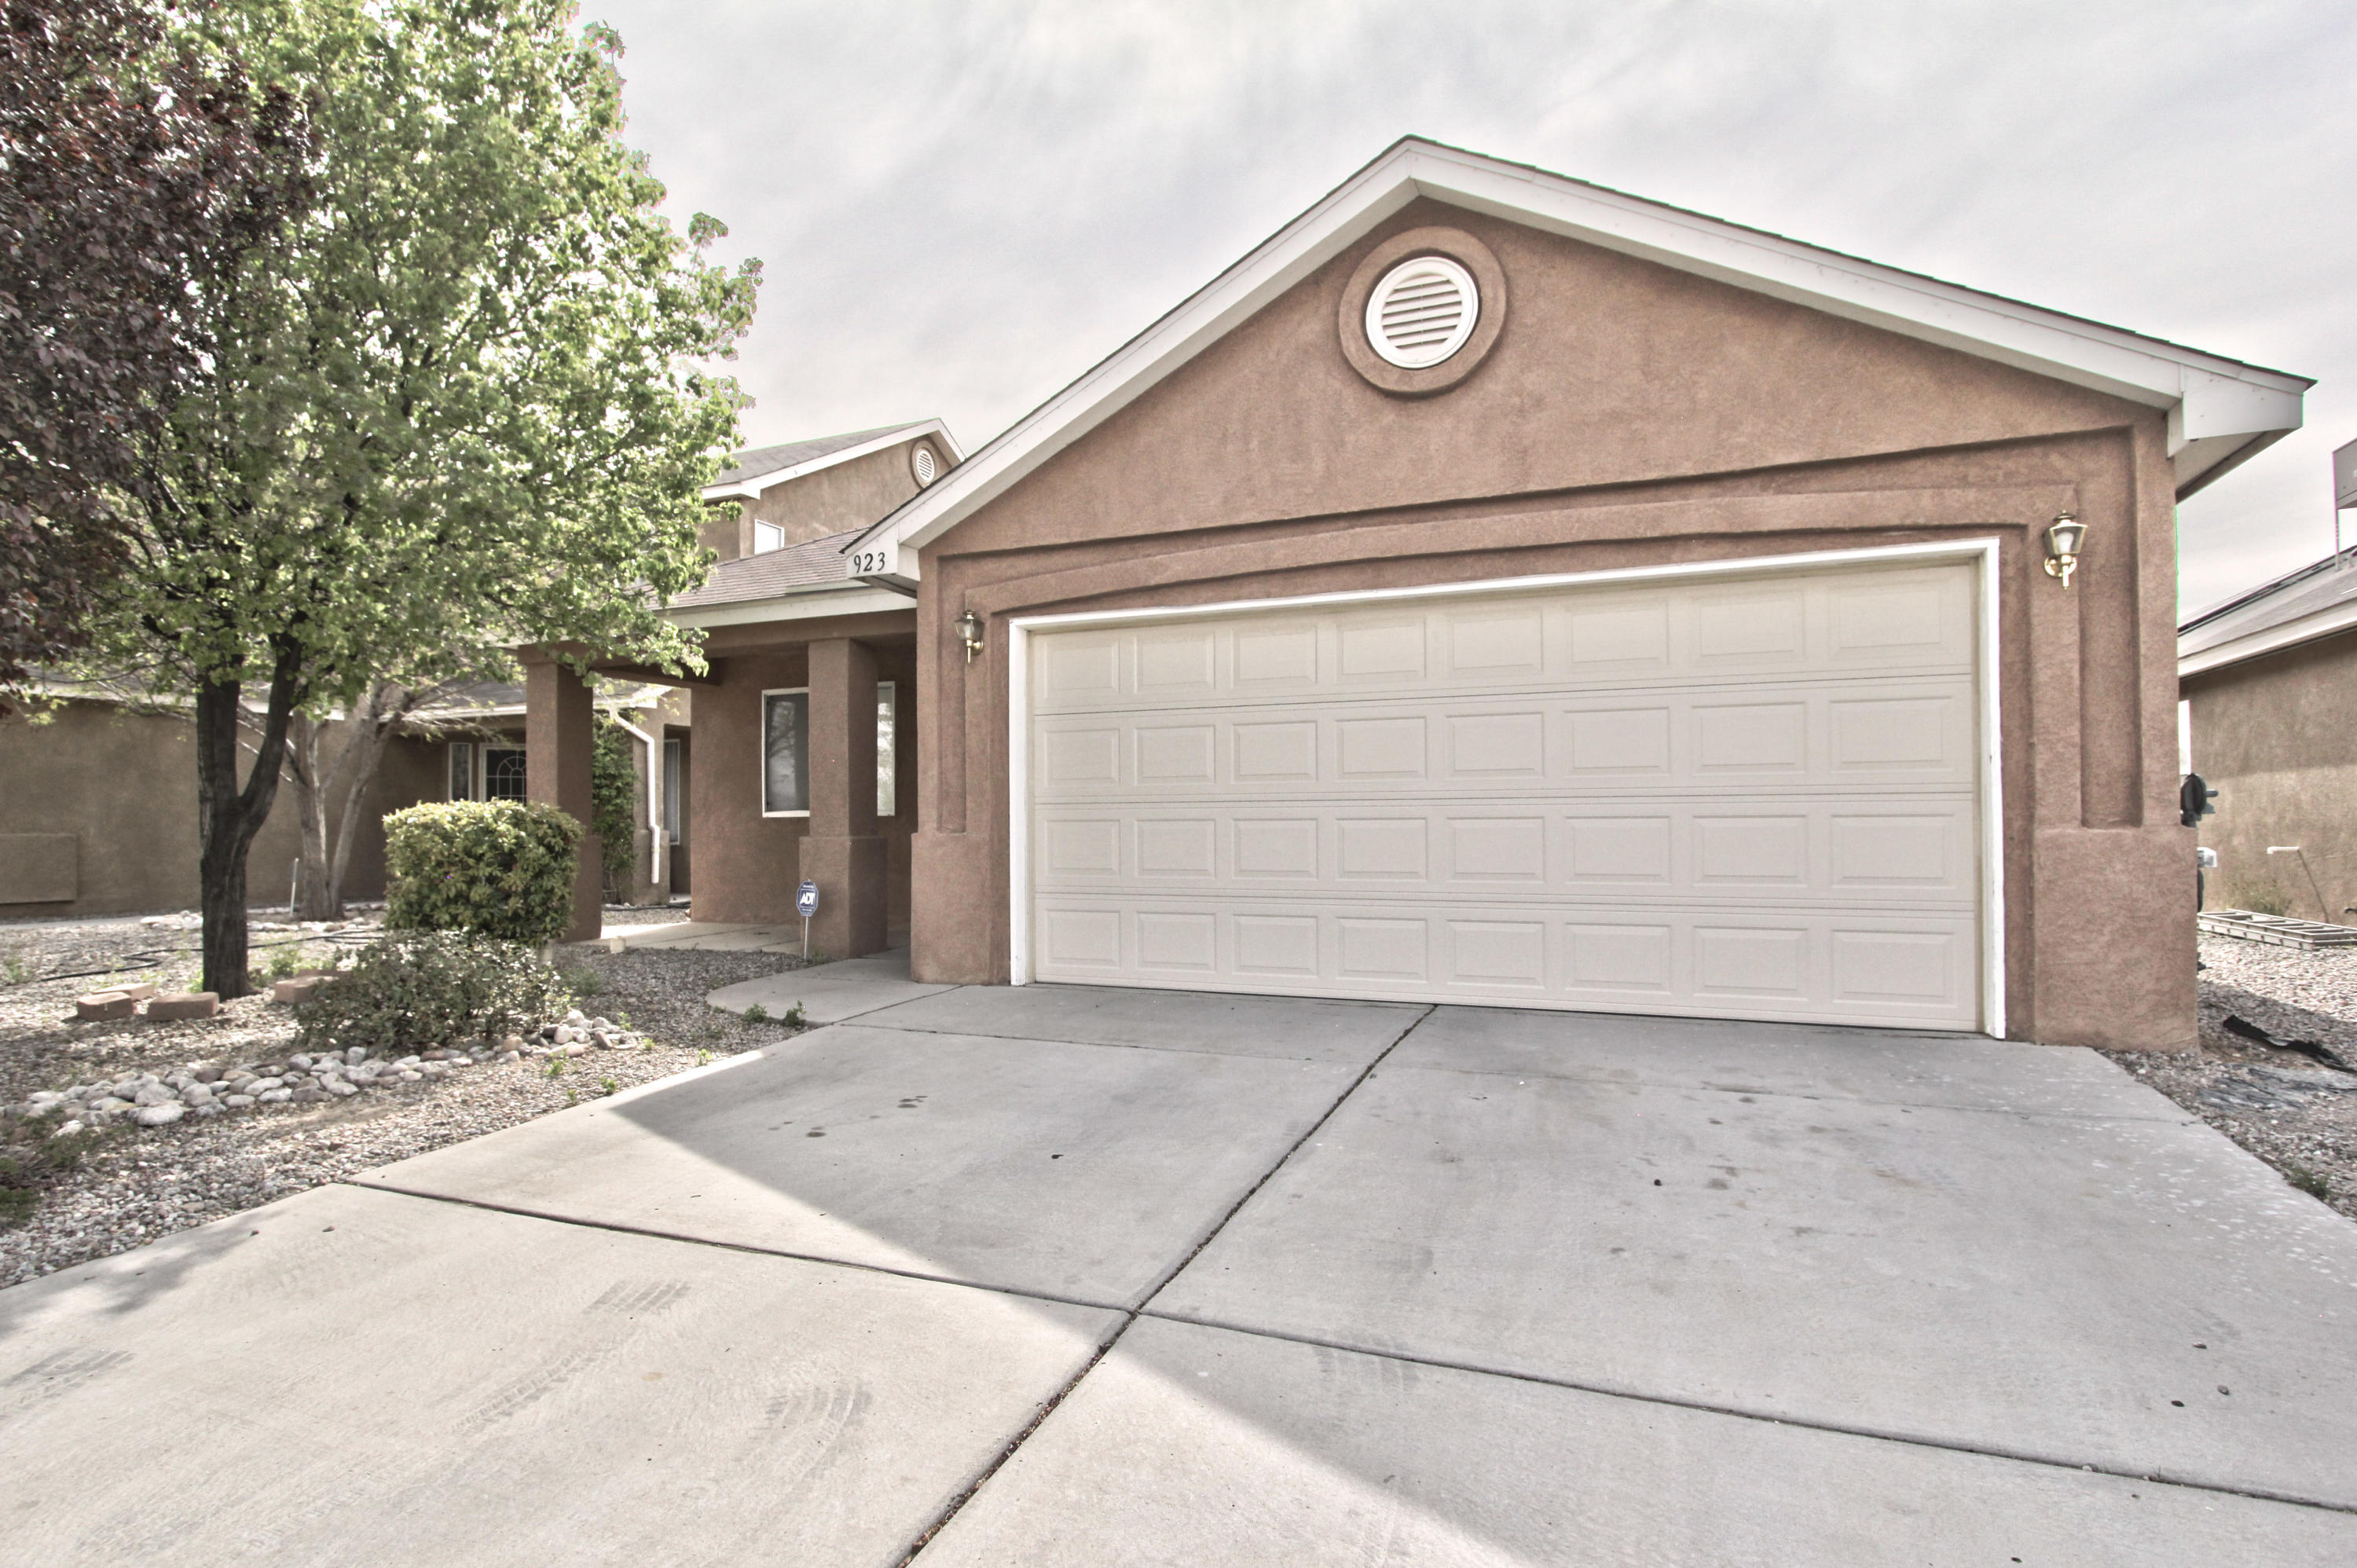 Charming 3 bedroom, 2 FULL bathroom home with an open floor plan.  Kitchen nook and kitchen bar for eating, and stainless steal appliances.  Upgraded ceiling fan/light fixtures and fresh paint.  Move-in ready!